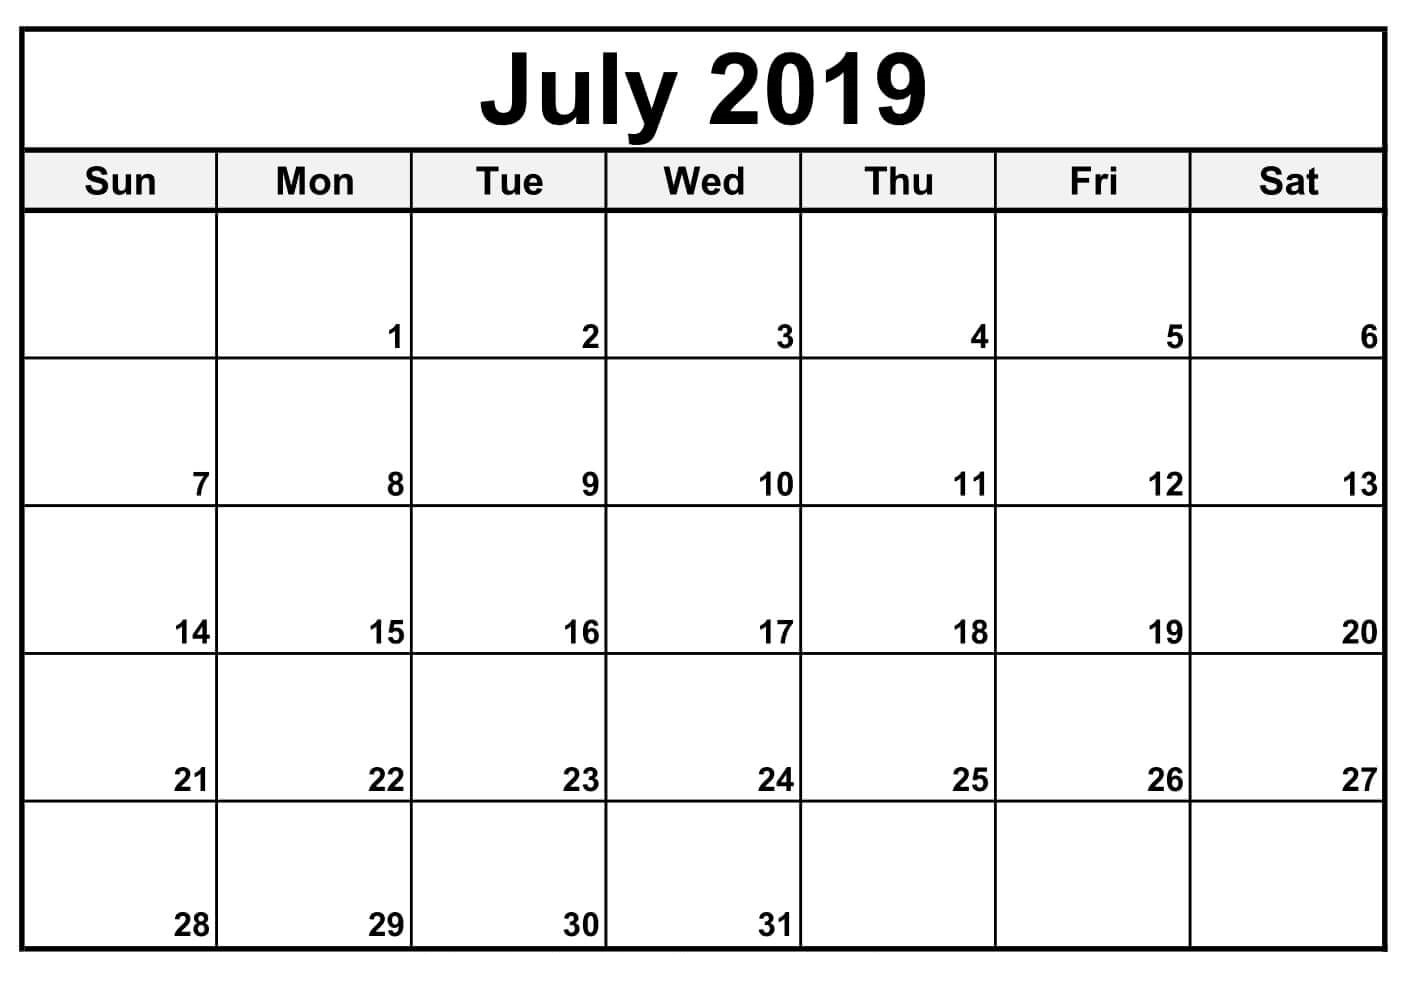 Fillable June 2019 Calendar Printable